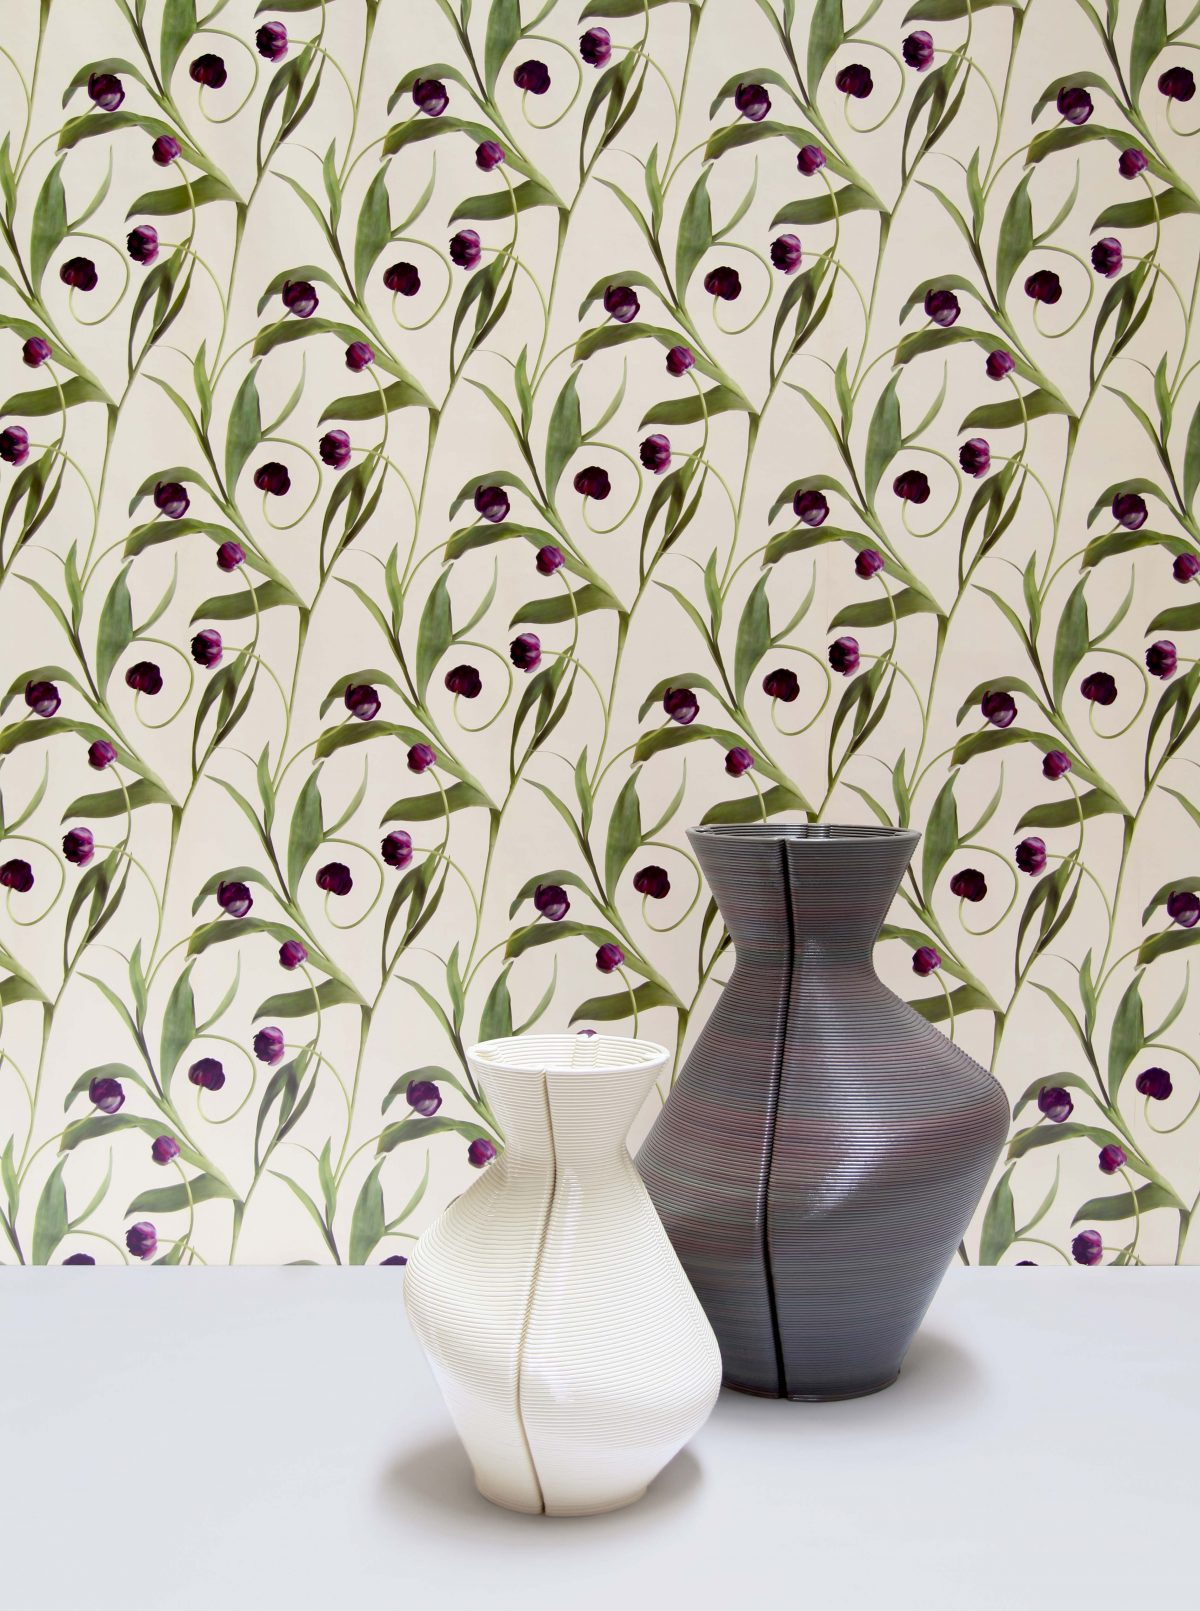 Changing Vases, Natural and Aubergine. Wall Paper New Nature Melissa Peen. Photo Melissa Peen